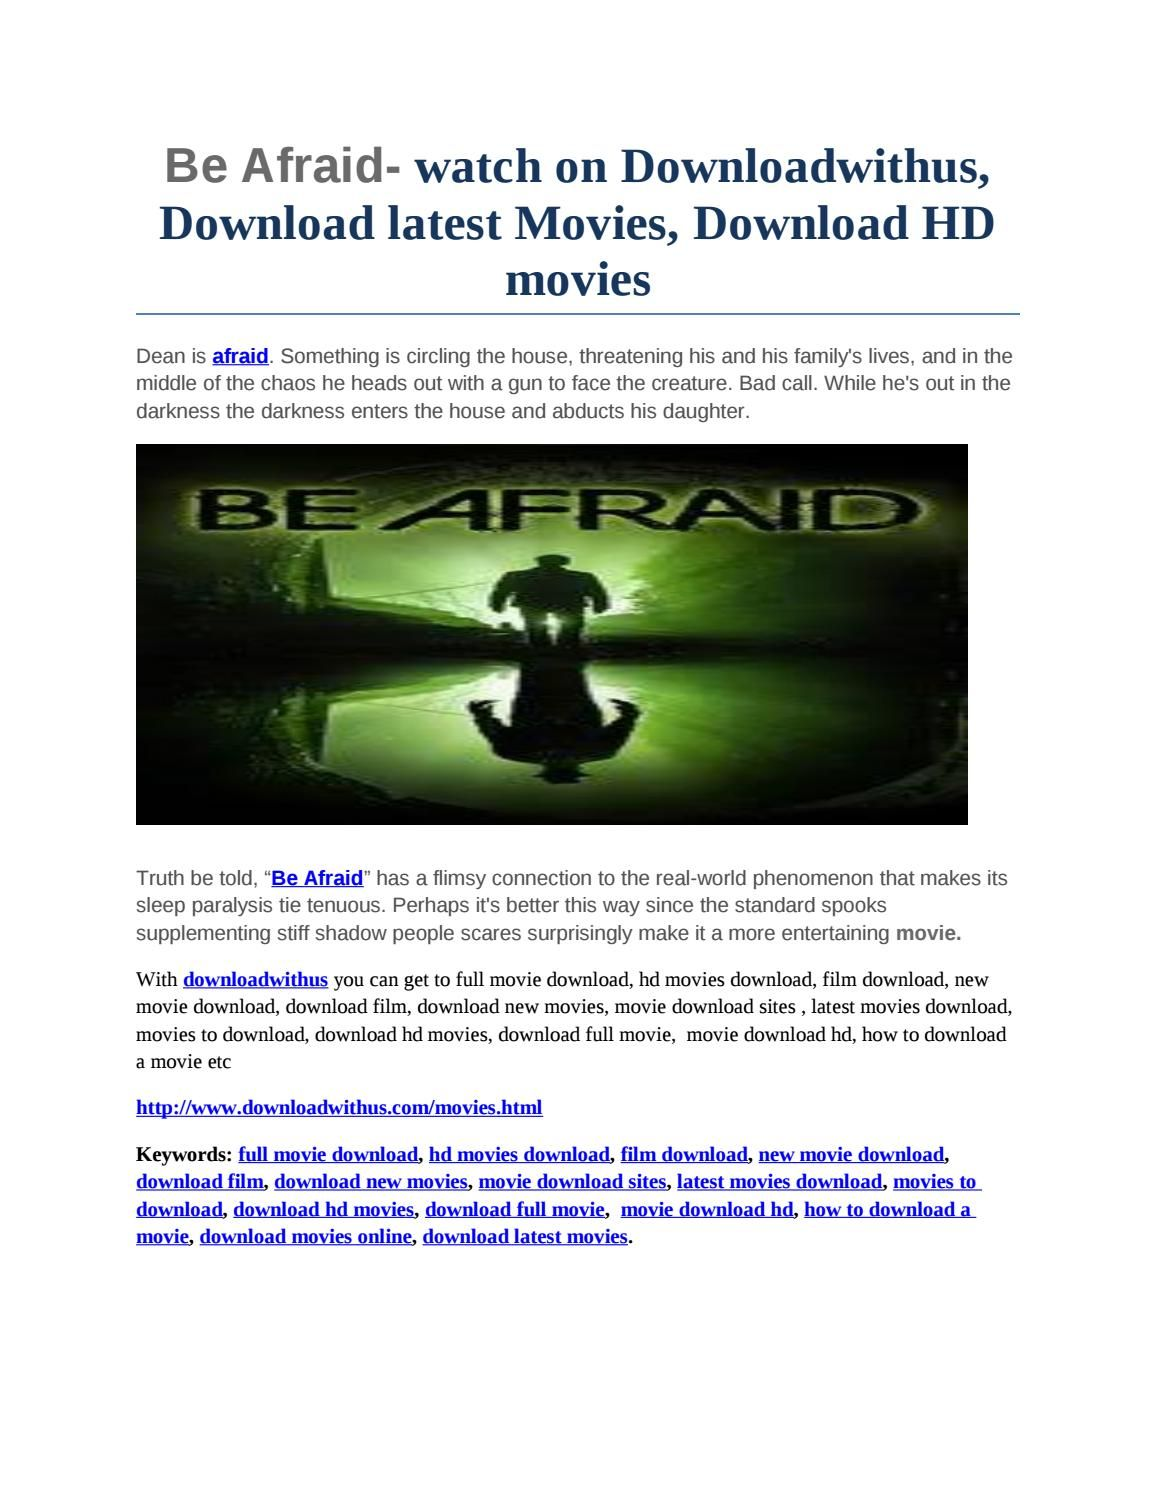 be afraid- watch on downloadwithus, download latest movies, download